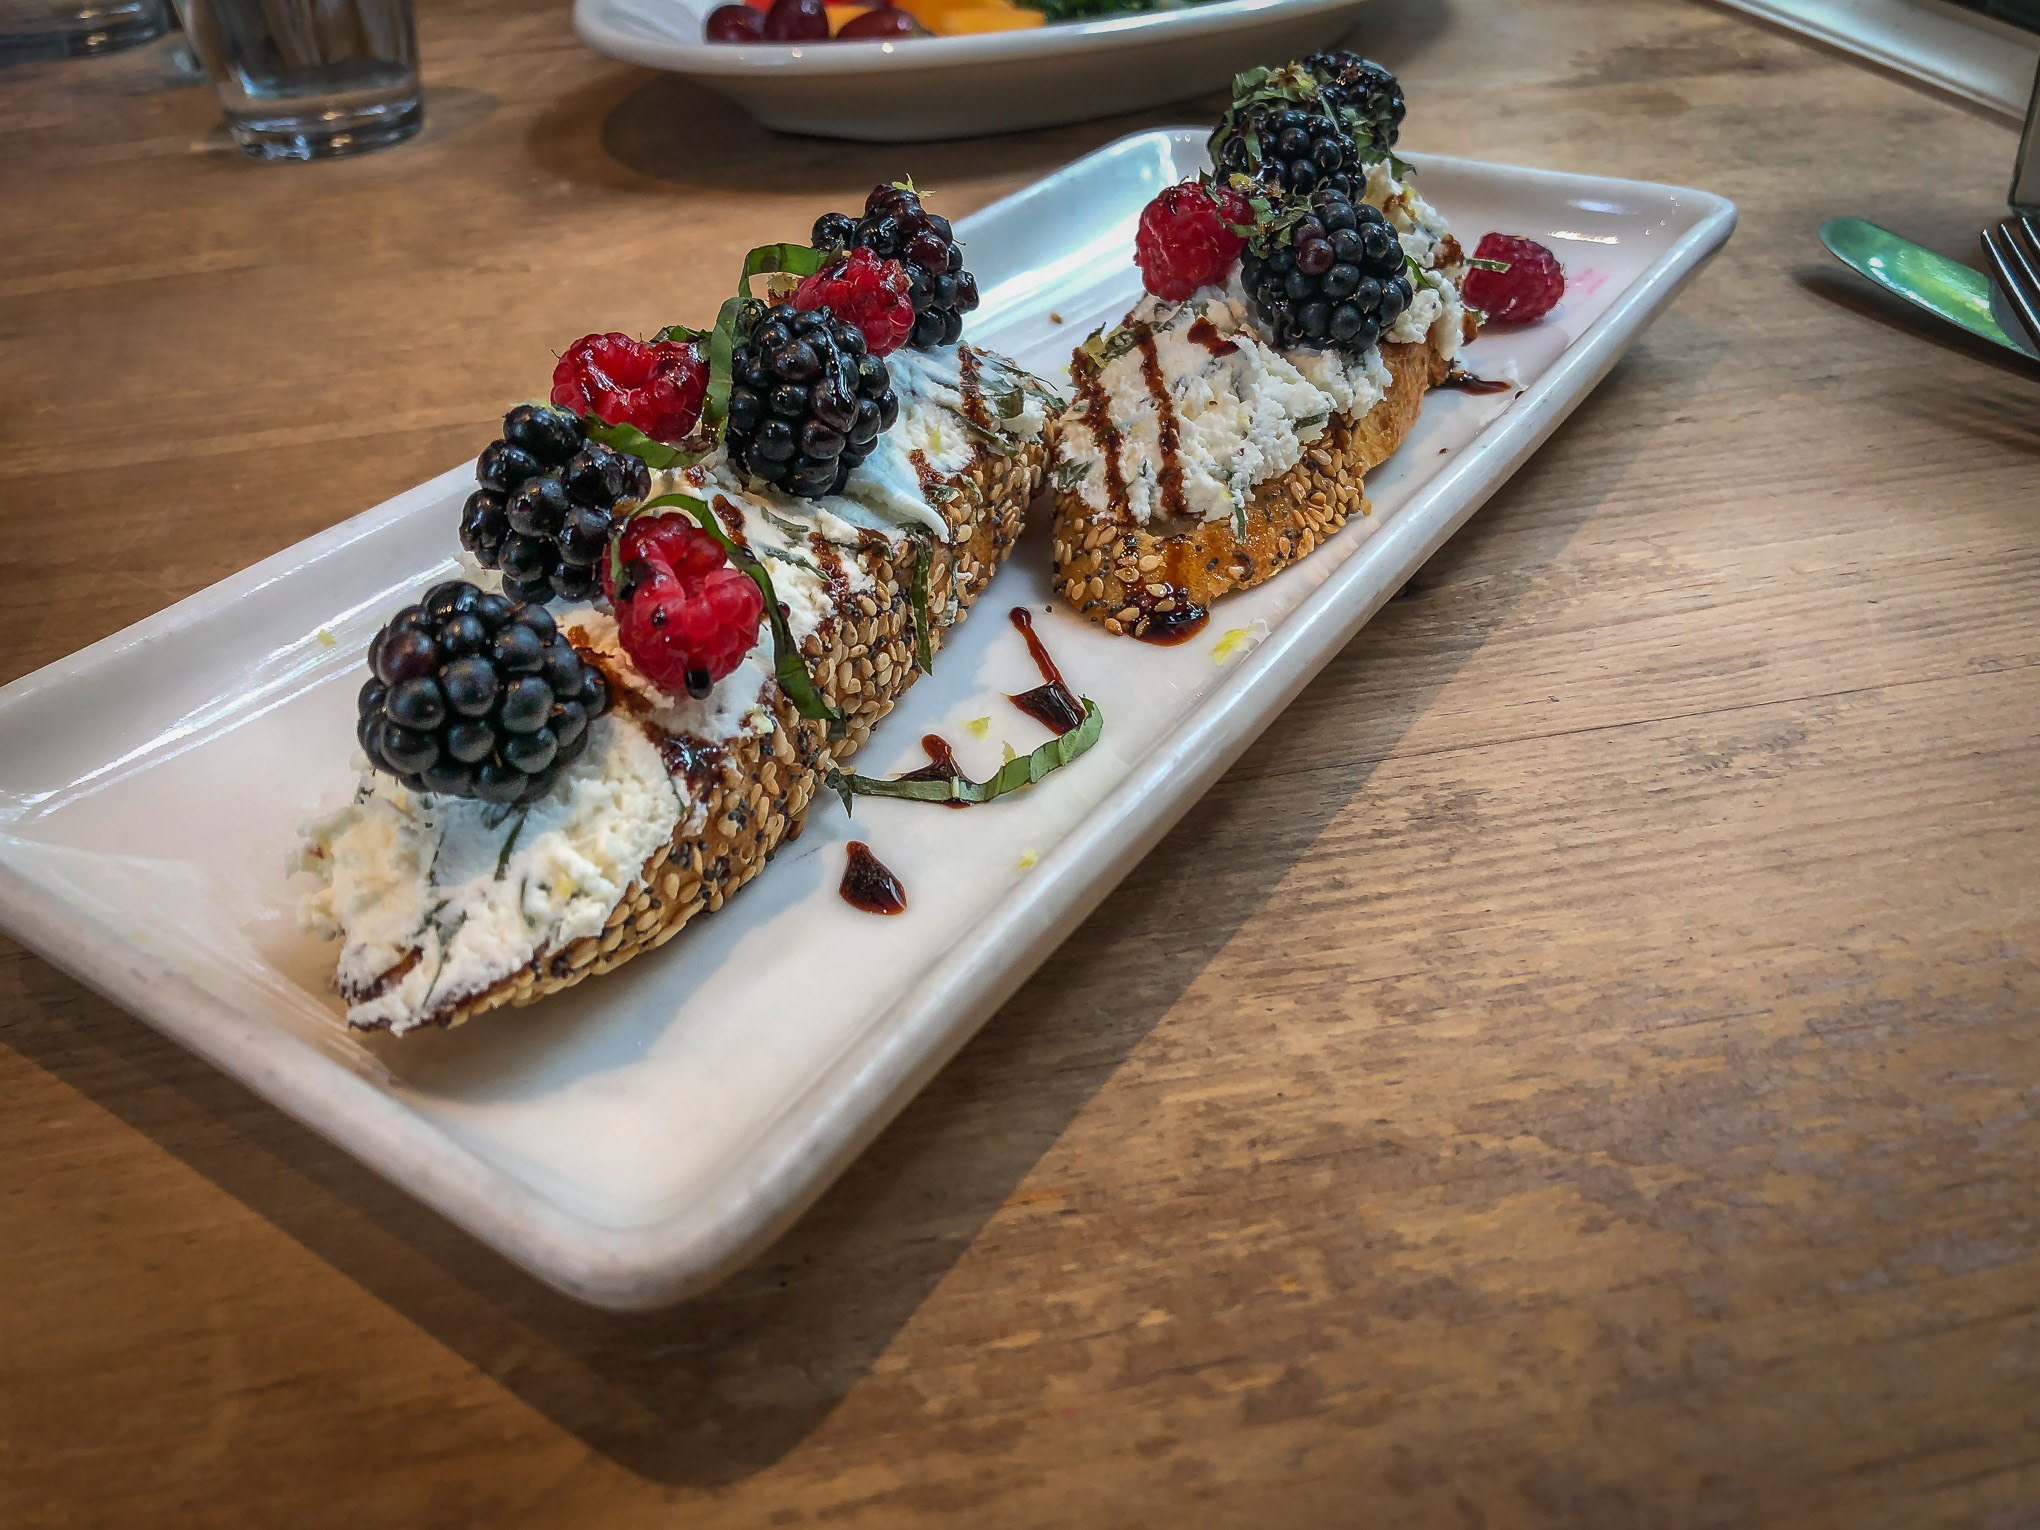 Bruschetta on a plate topped with berries